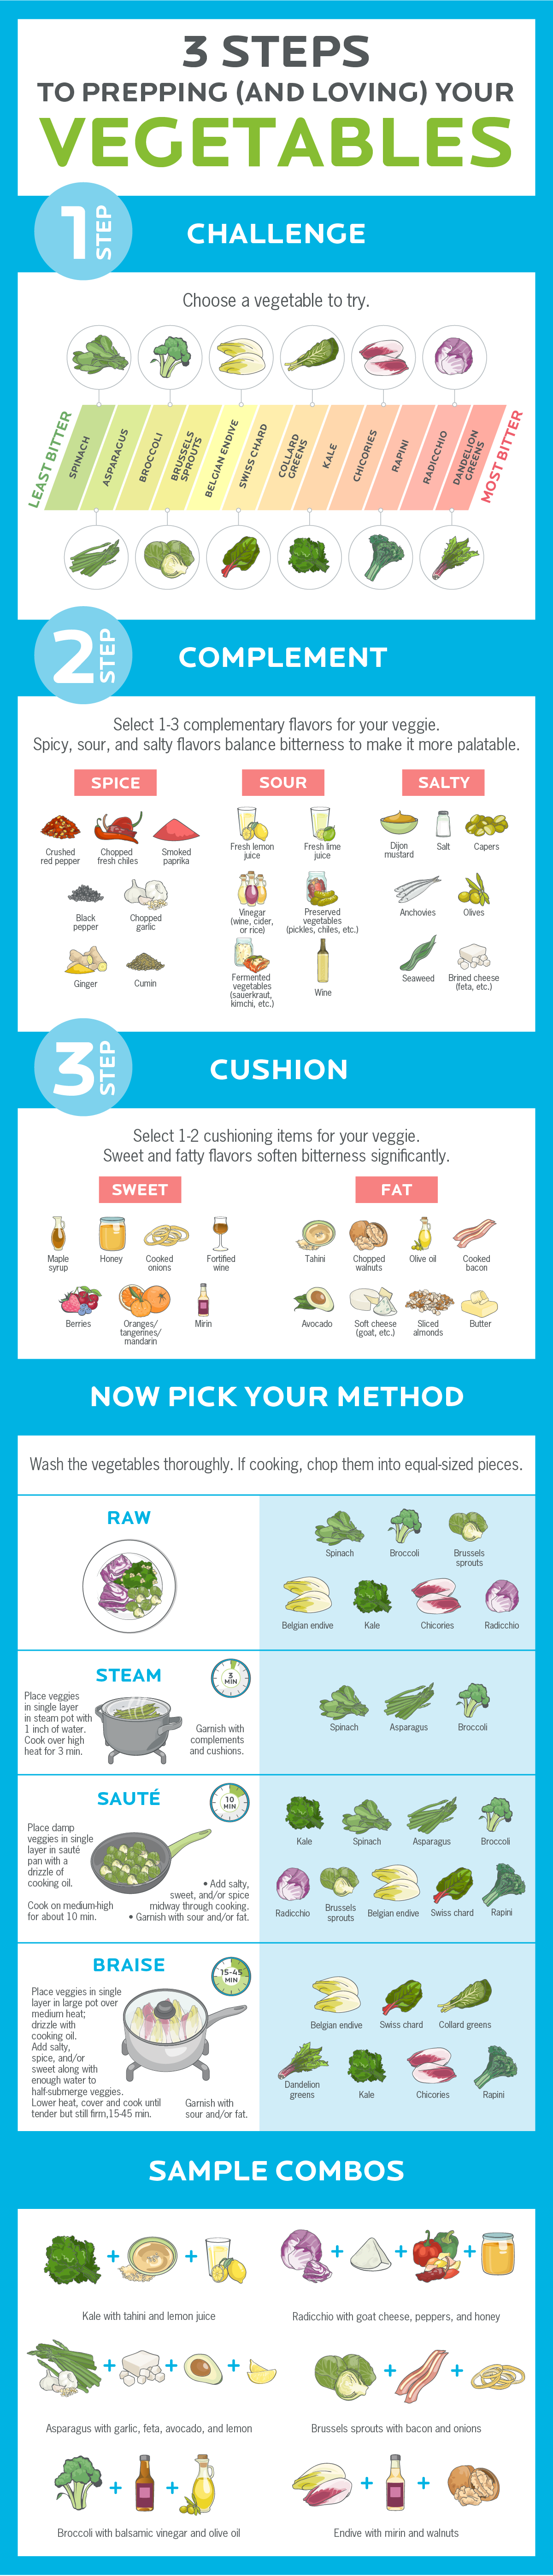 Going Though With Your Veggies - Infographic